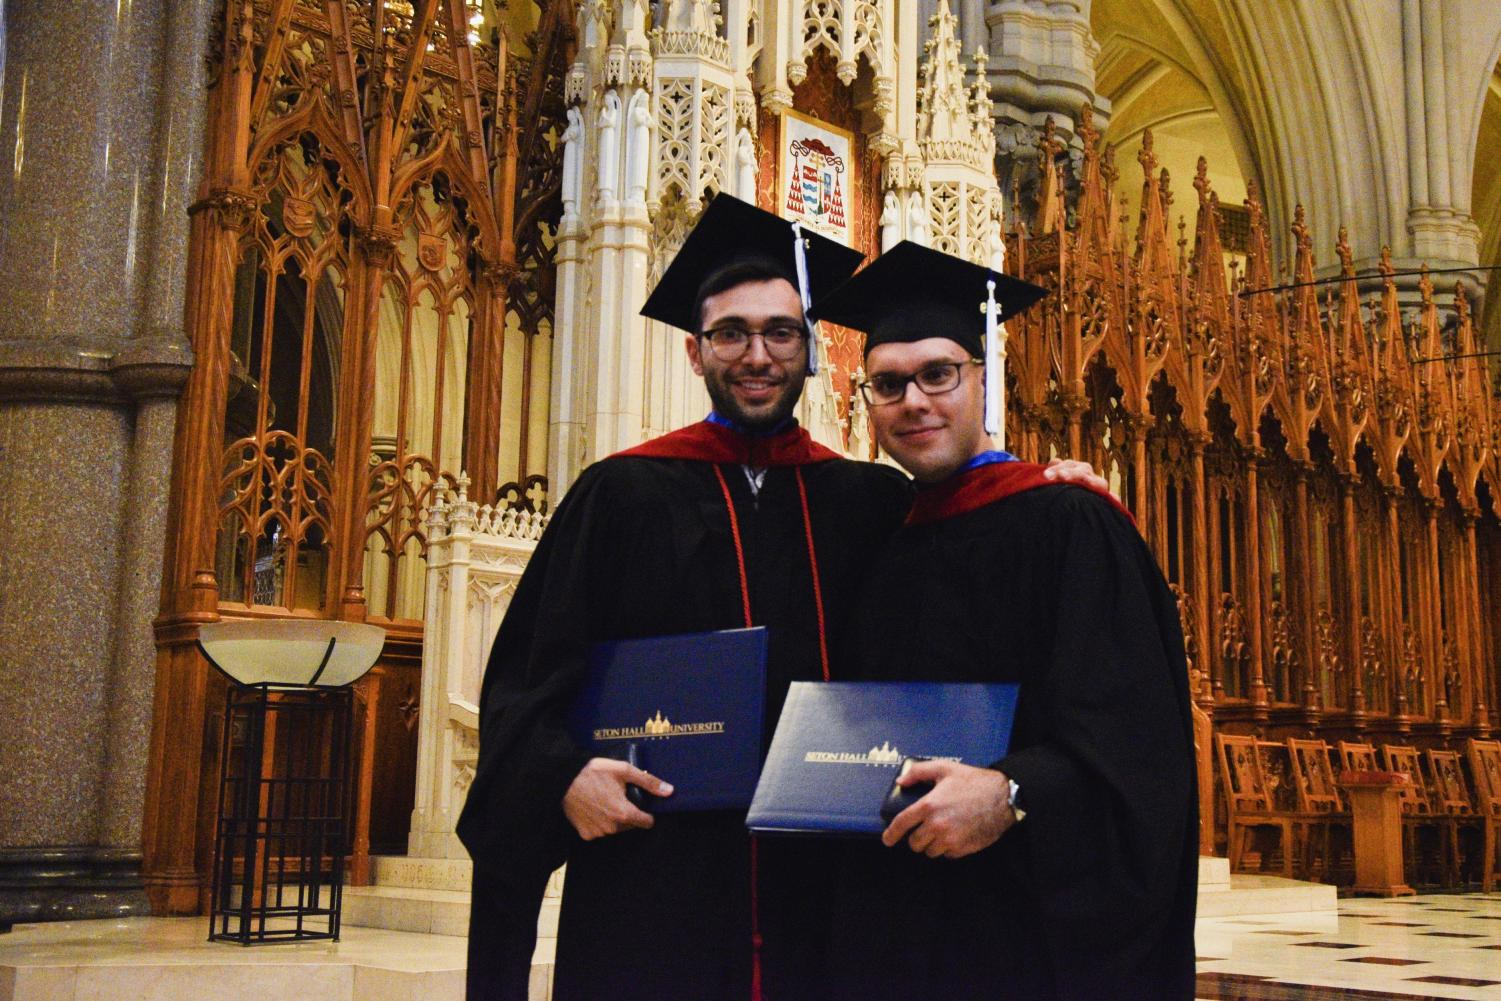 Mr. Stephen Adubato (left) and Br. Asiel Rodriguez celebrate after receiving Master's degrees and academic medals in a ceremony at the Cathedral Basilica in Newark.